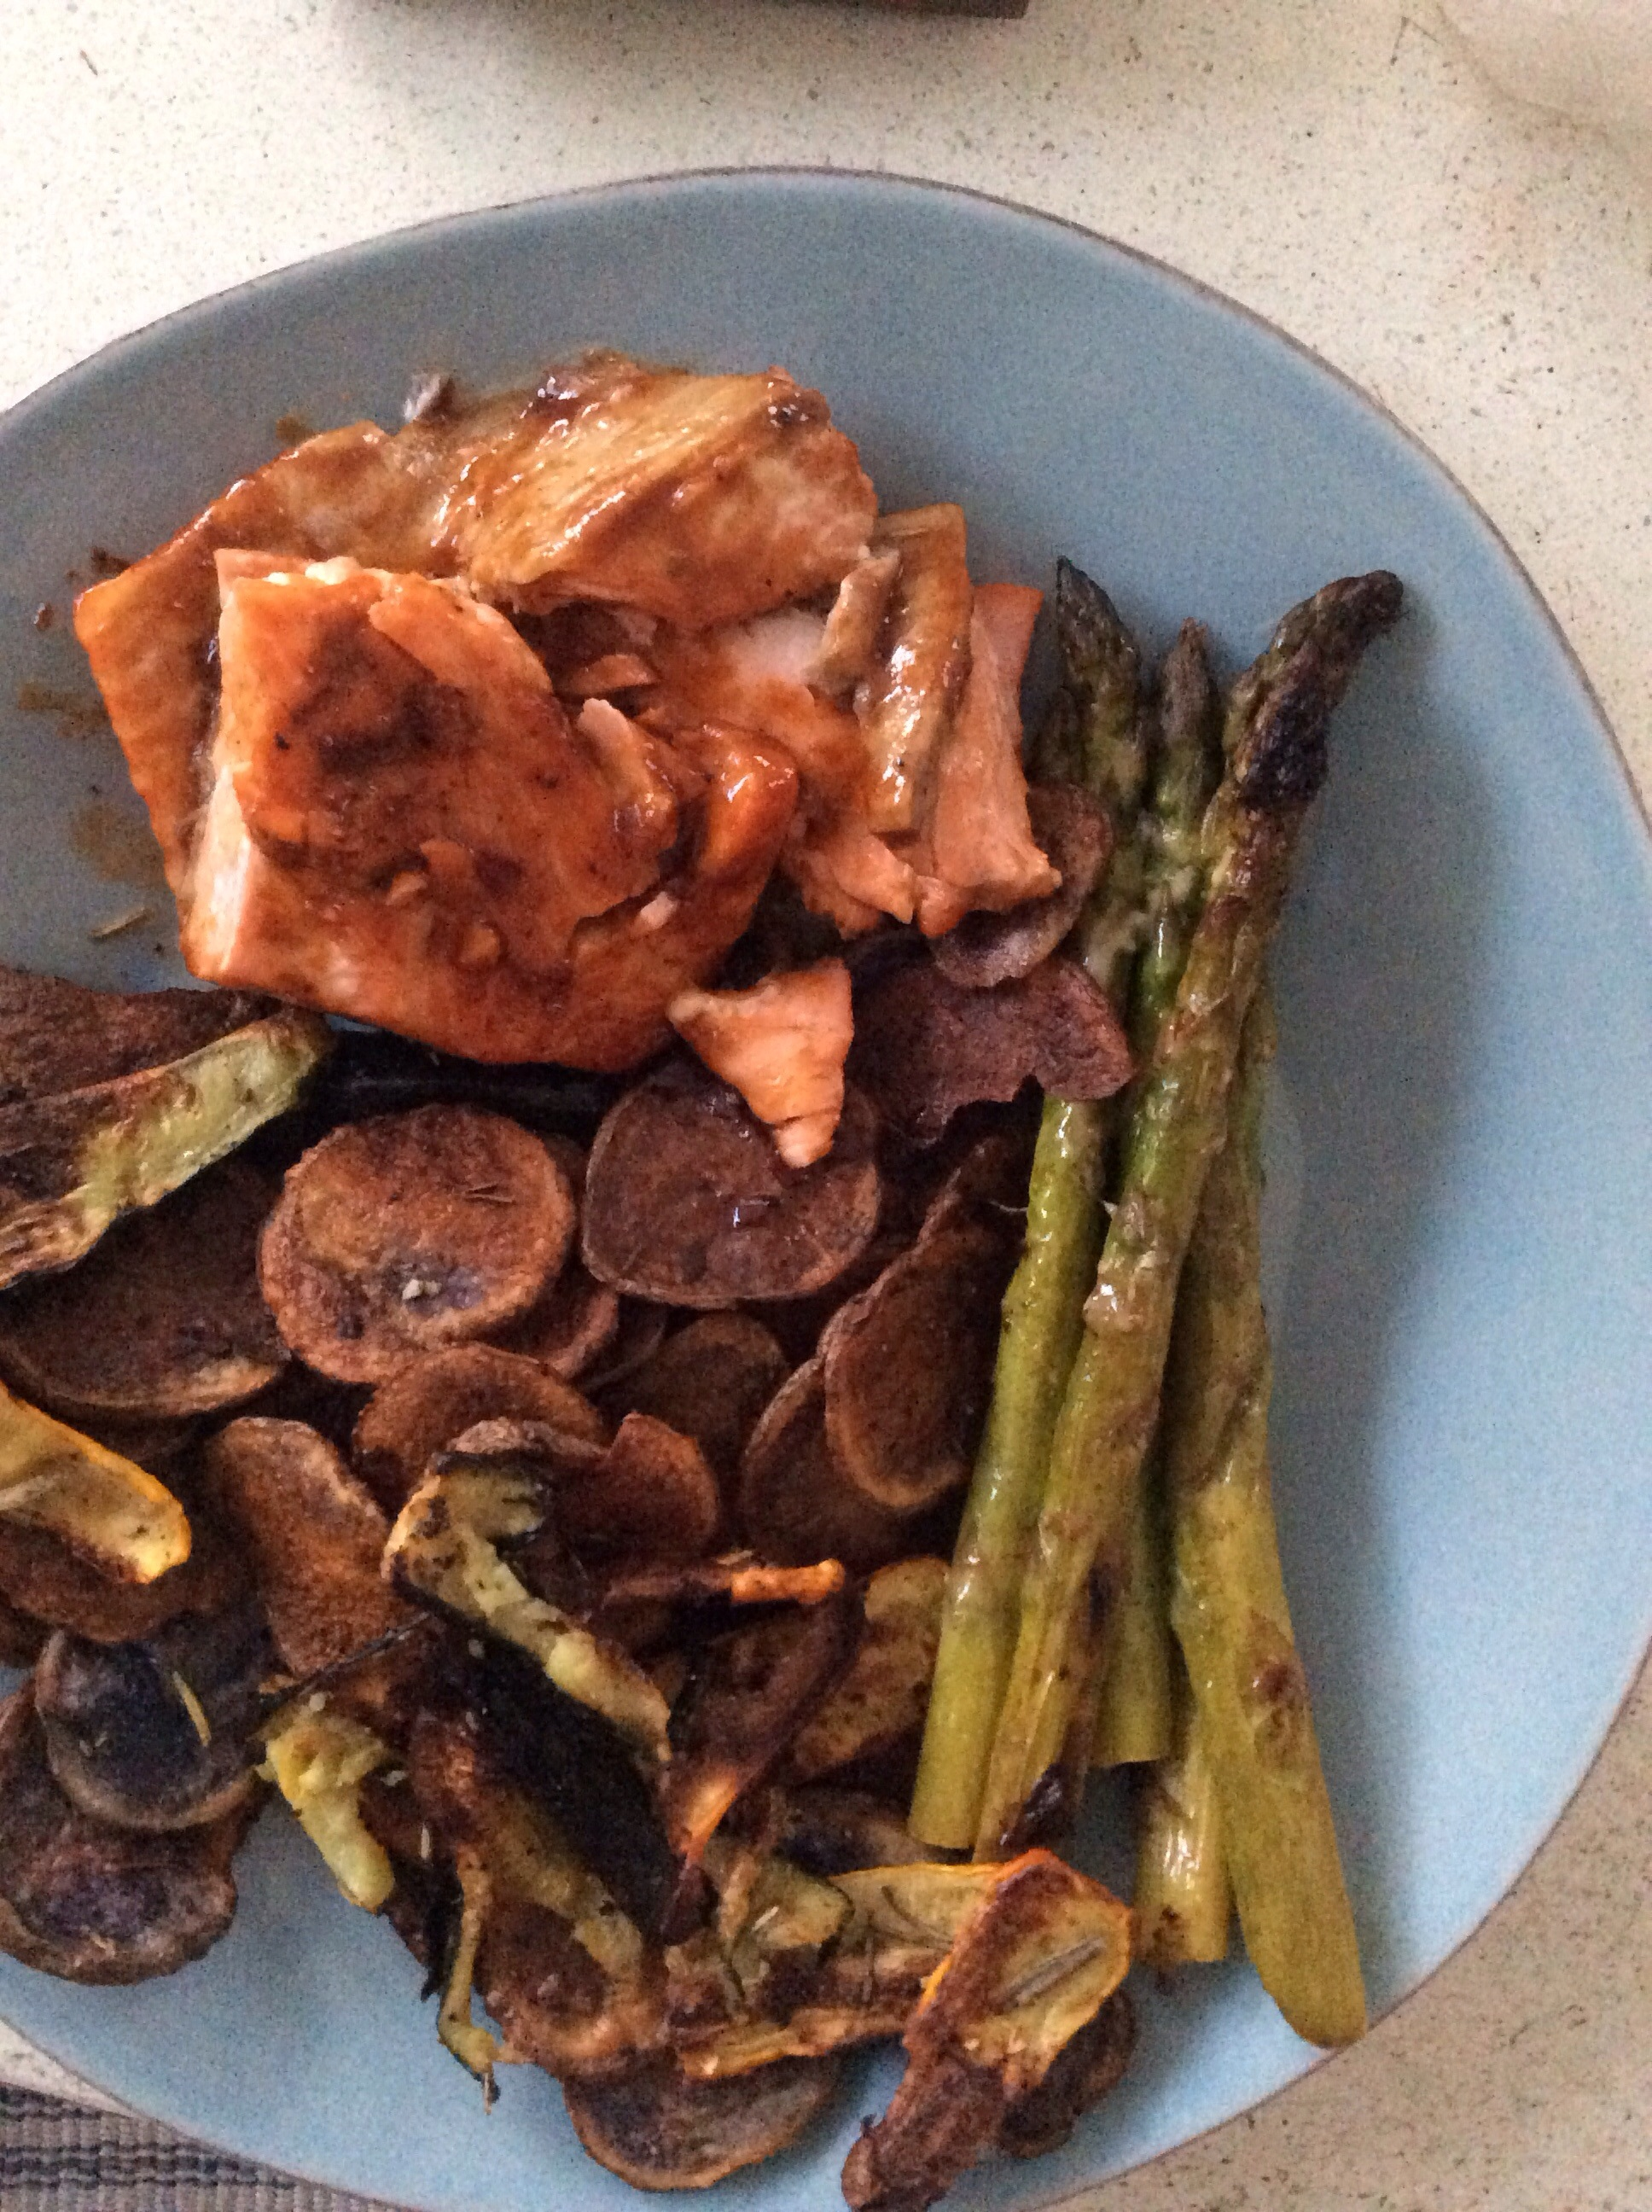 BBQ salmon with asparagus, zucchini, squash and purple potatoes